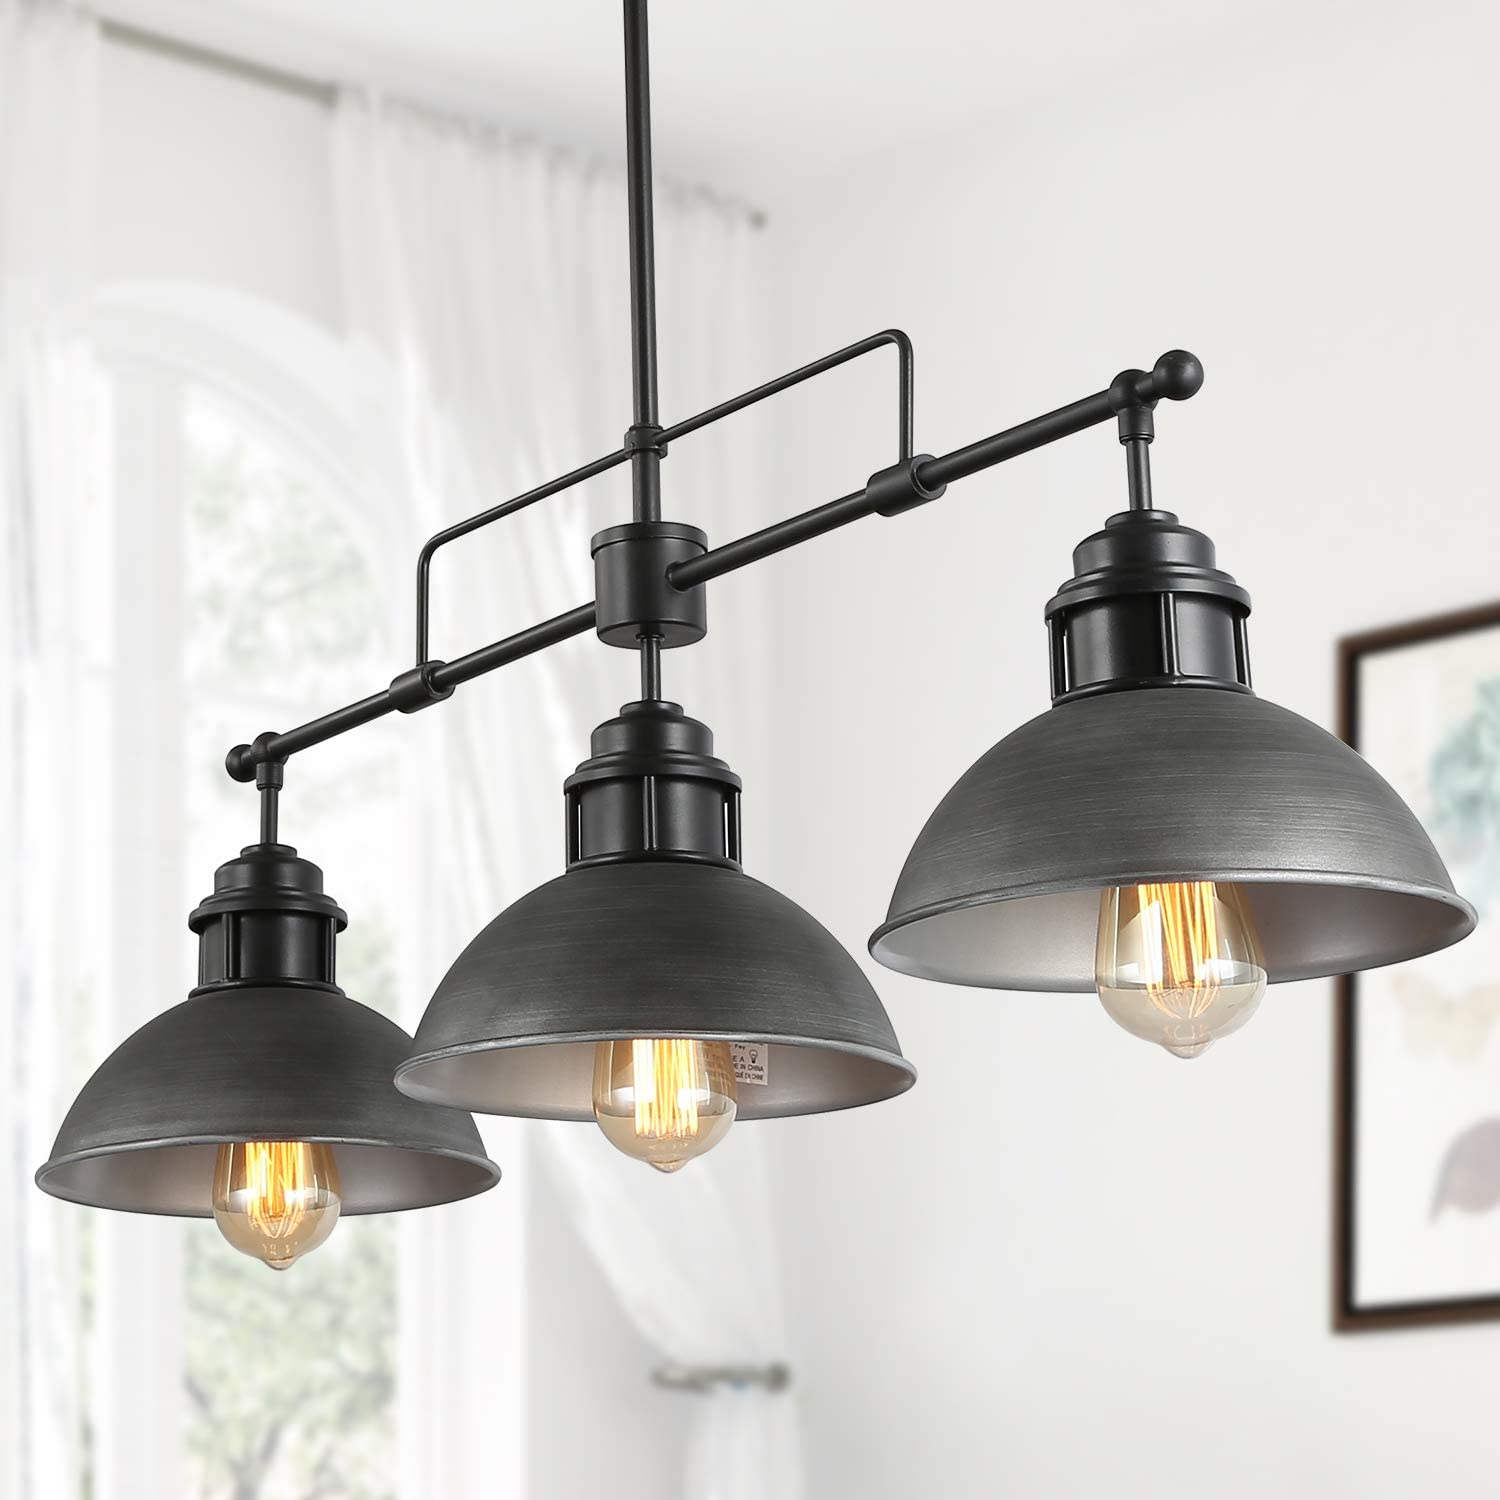 LNC Kitchen Ranking TOP5 Island Max 62% OFF Lighting Dining in D Room Chandelier Antique